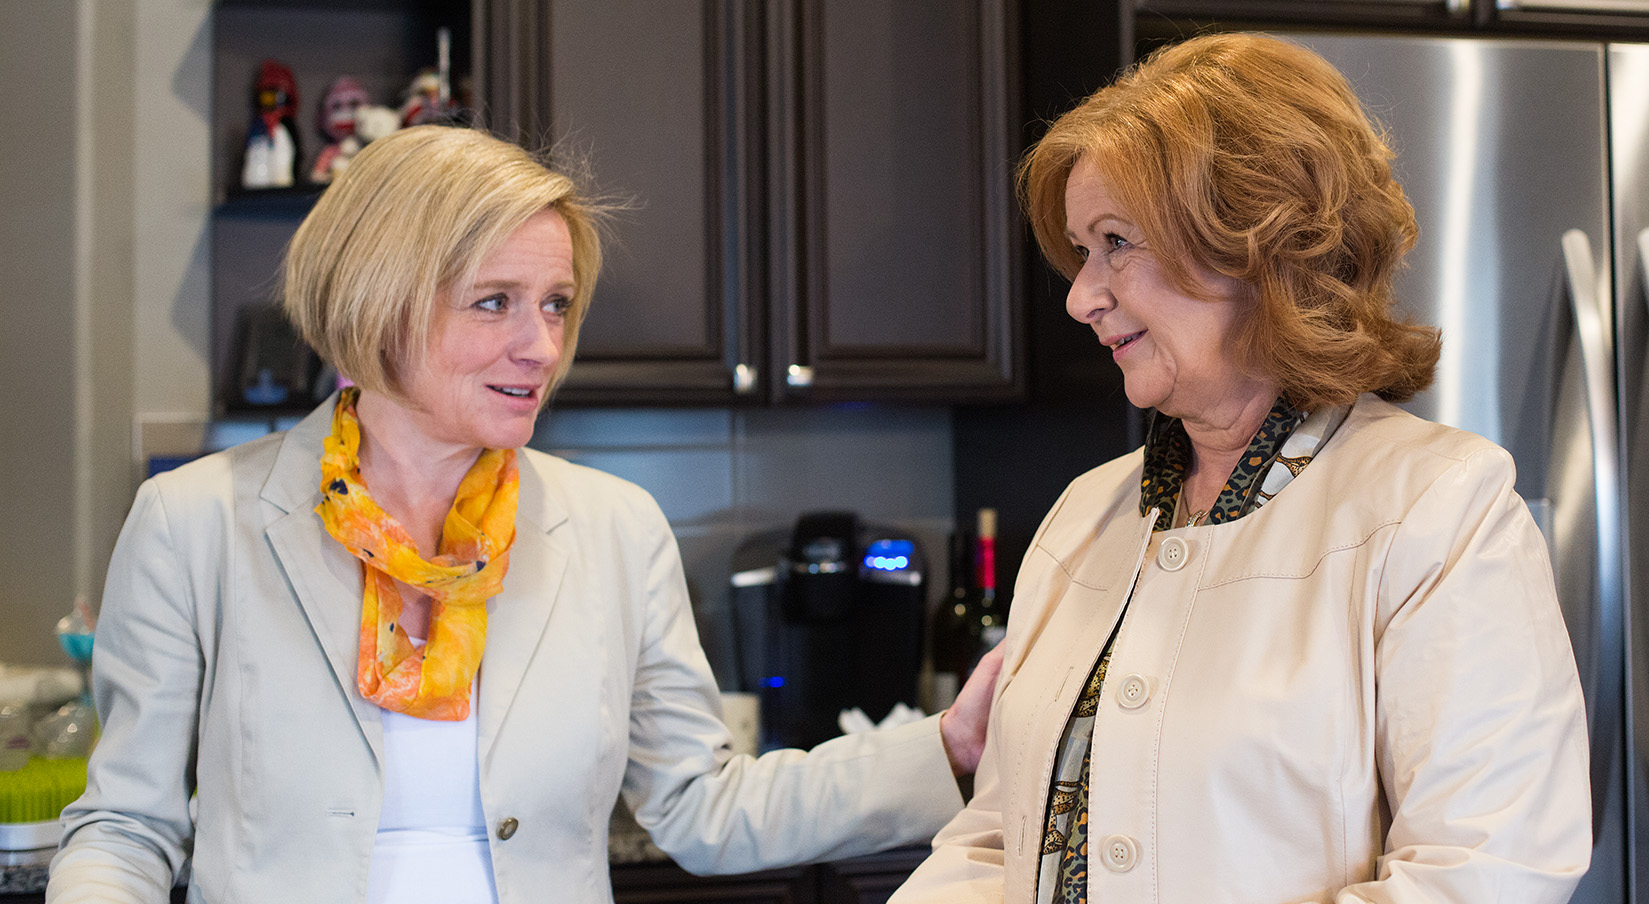 Rachel Notley's NDP to improve access to long-term care by opening new beds